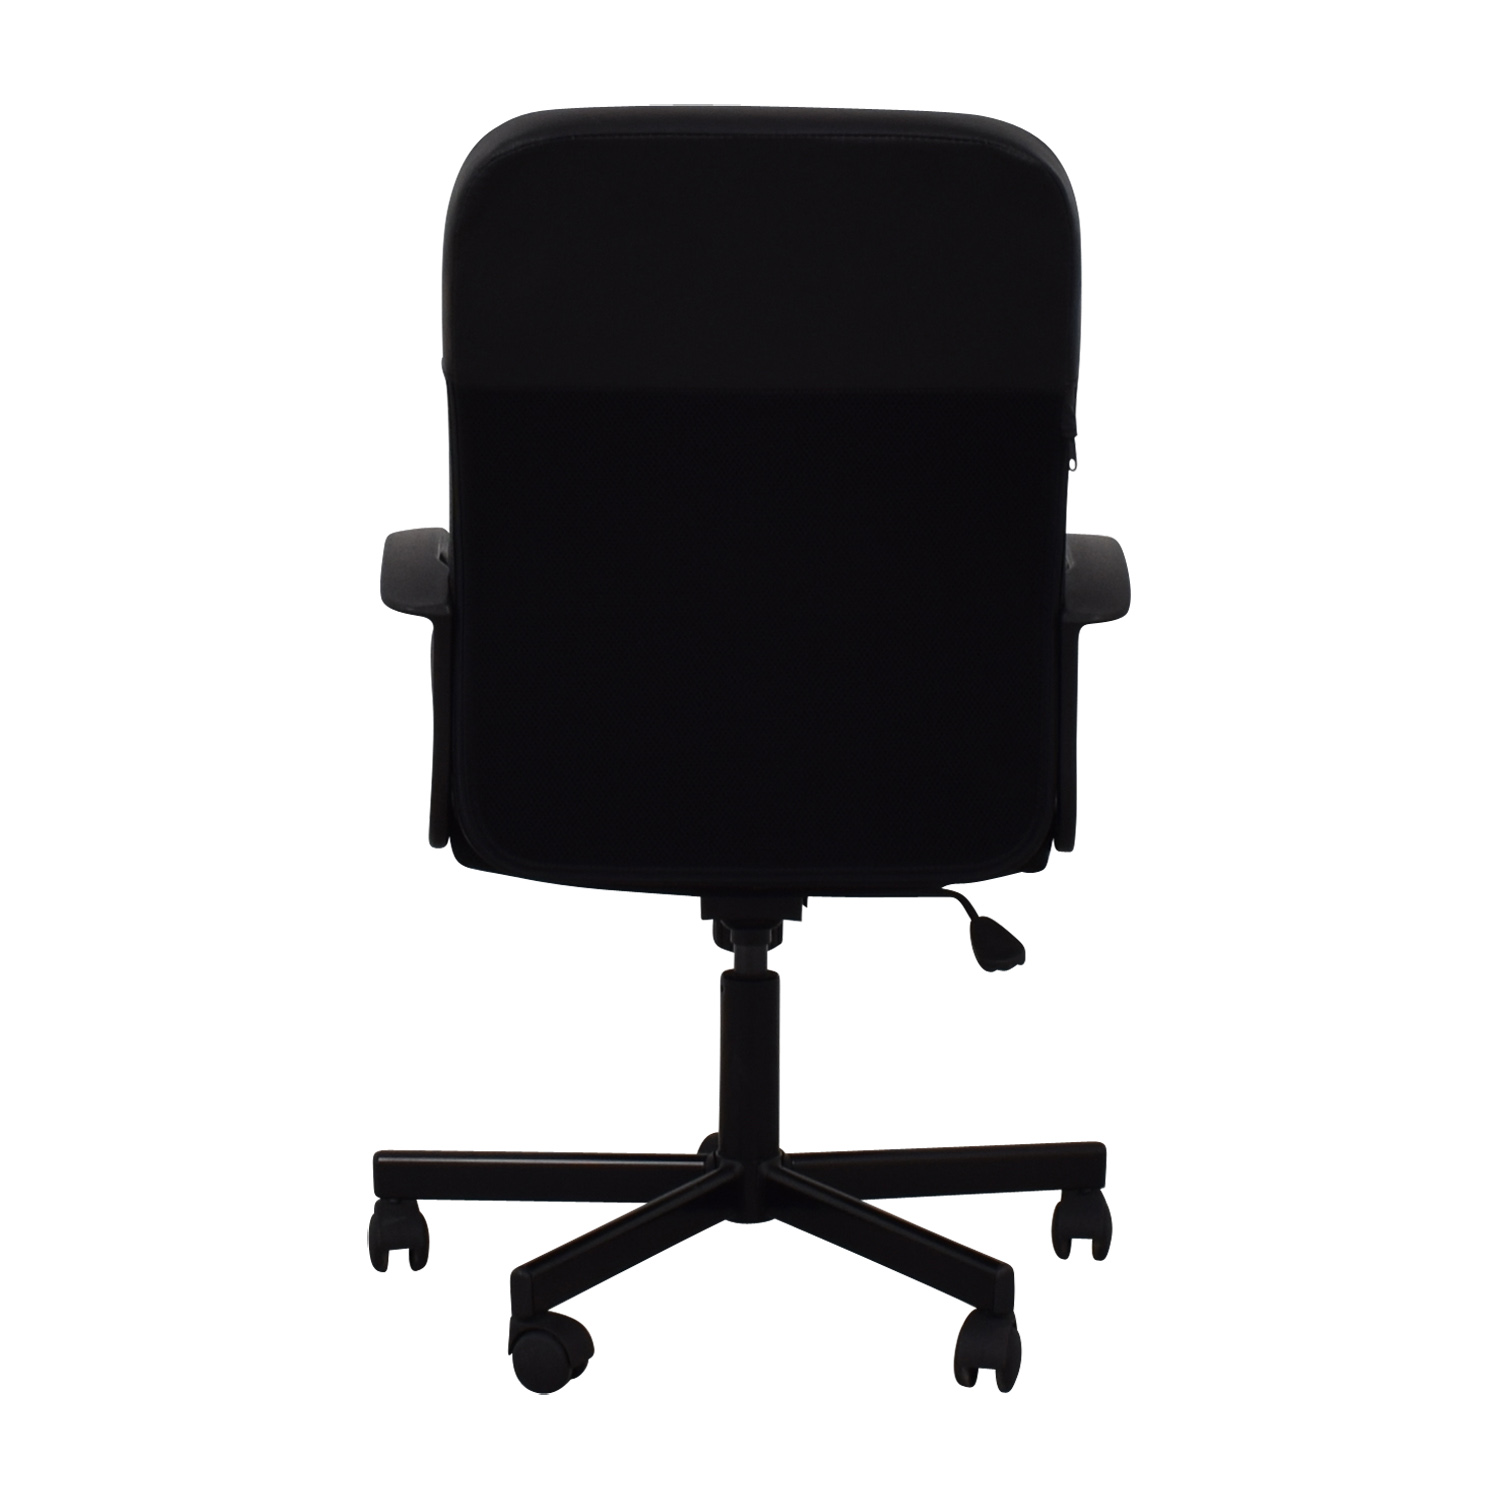 IKEA Renberget Black Office Chairs / Home Office Chairs